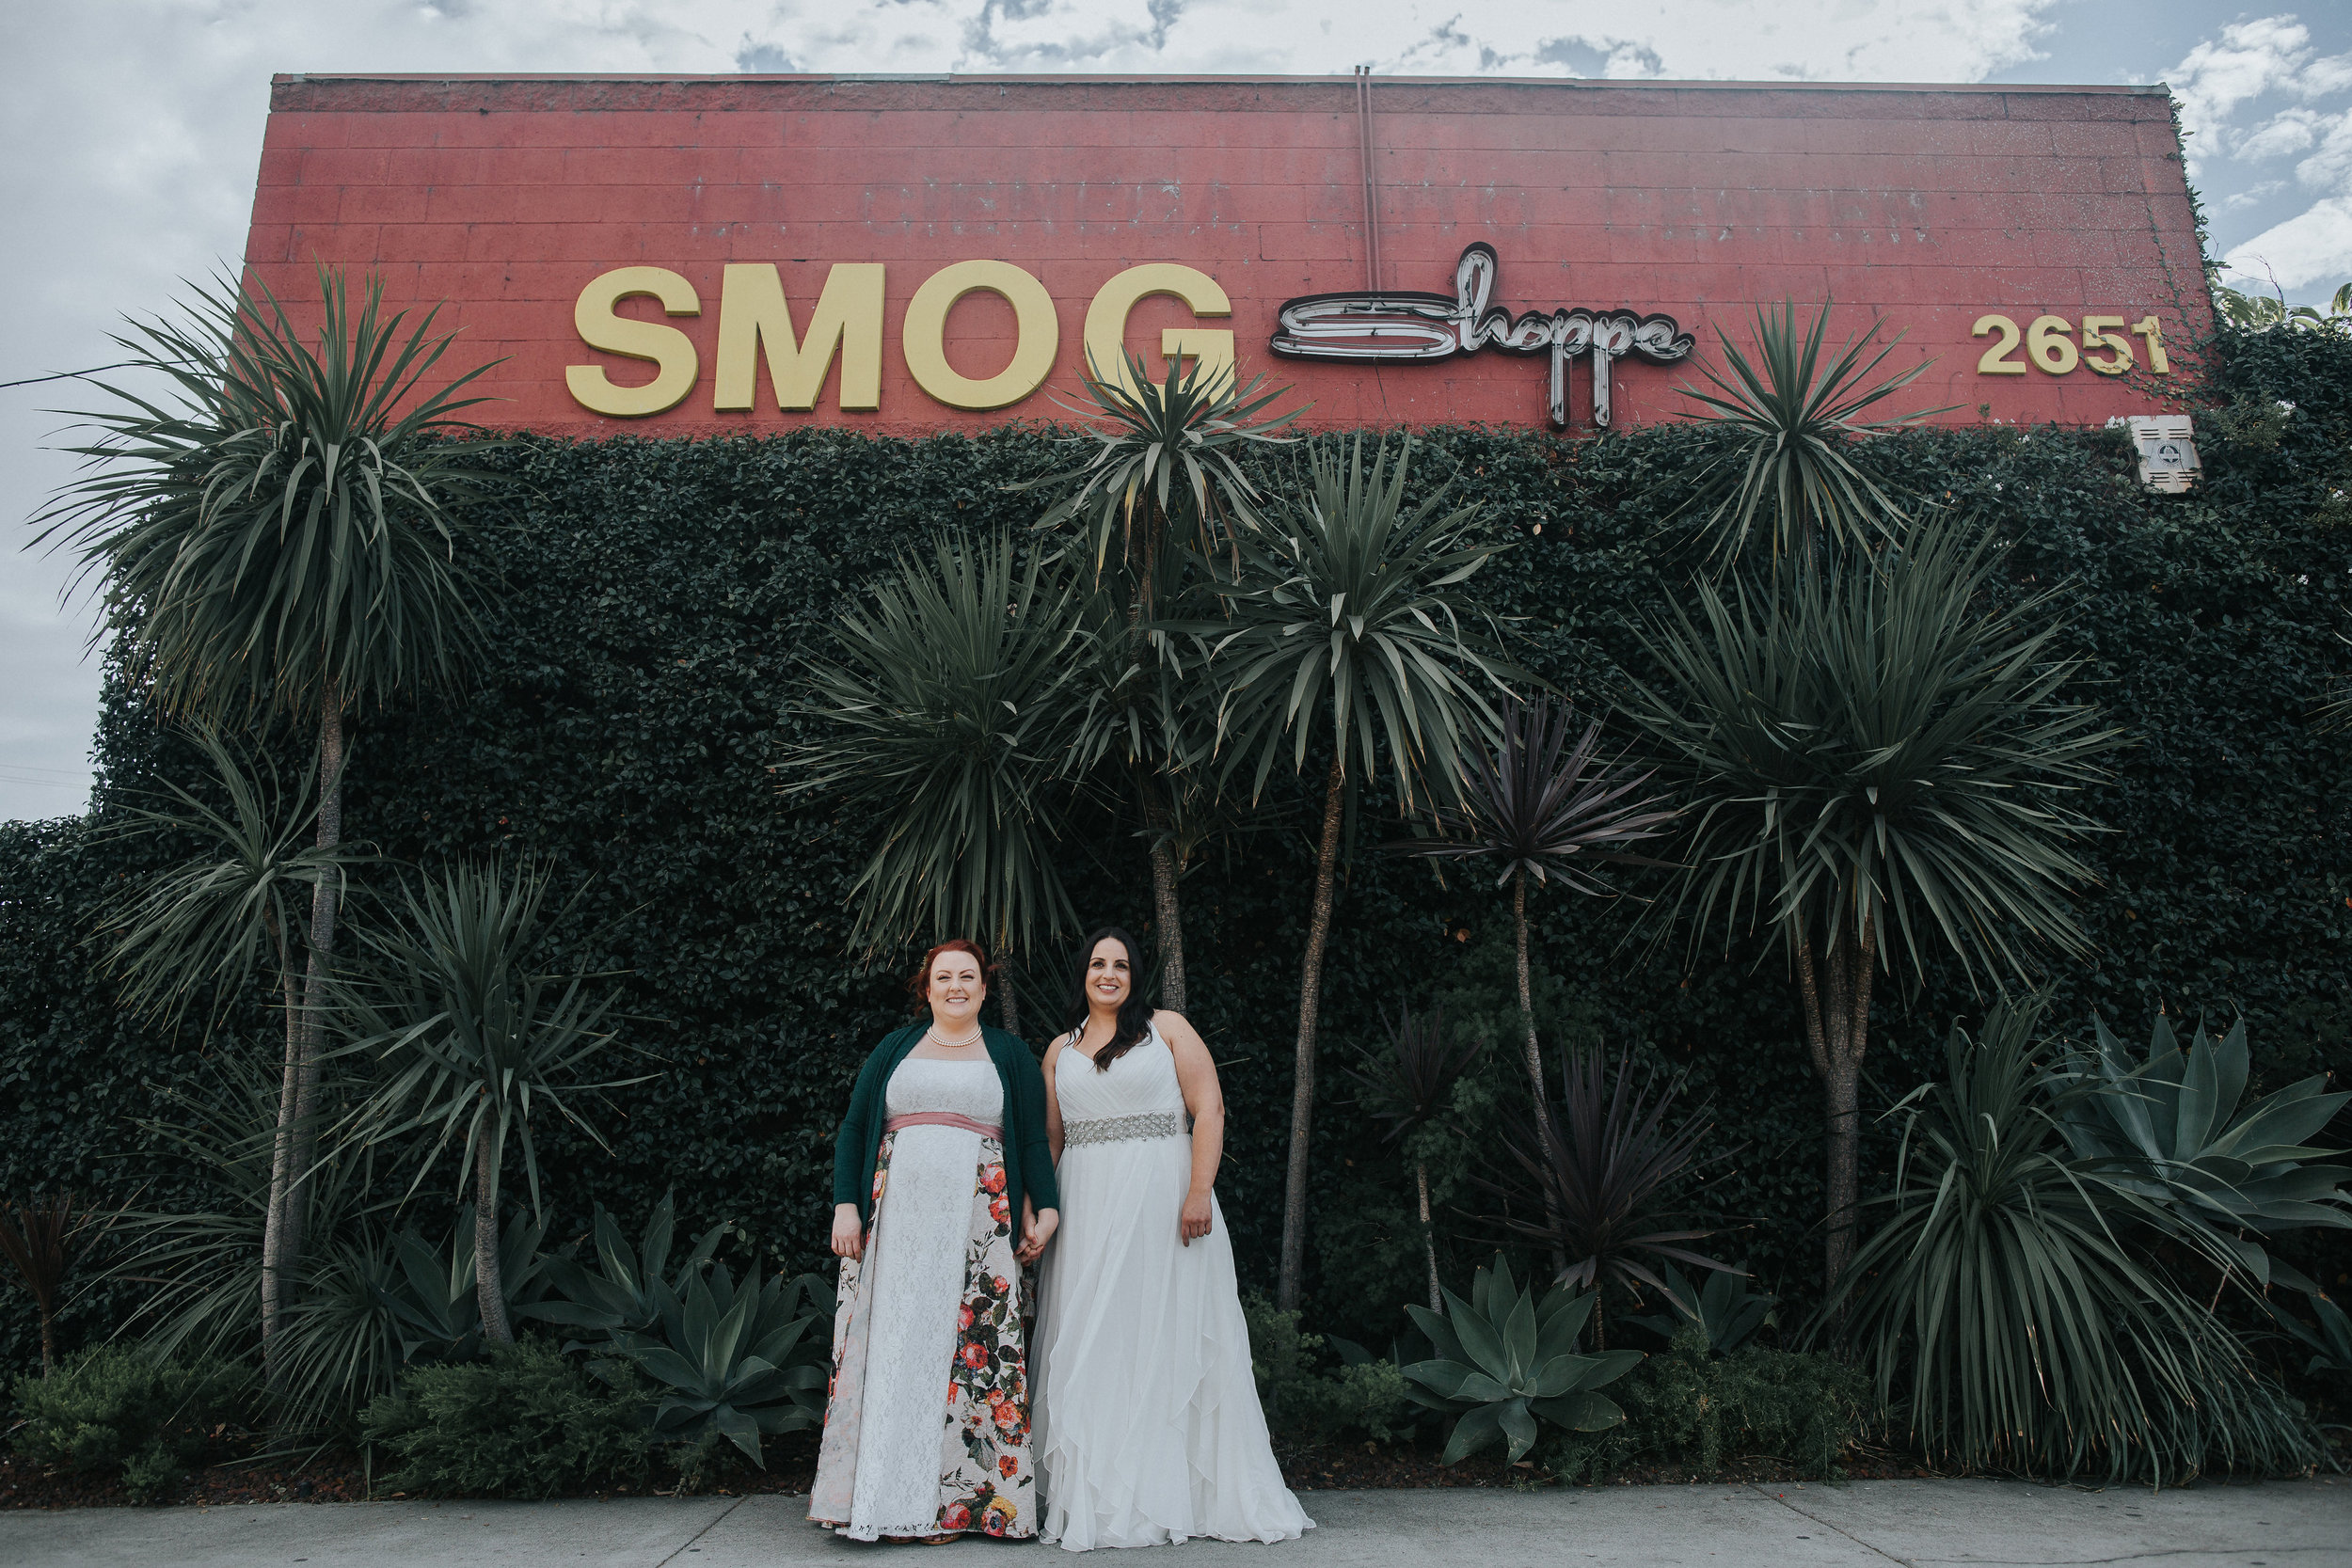 SmogShoppe Wedding, Art & Soul Events, Two brides, Eclectic Wedding